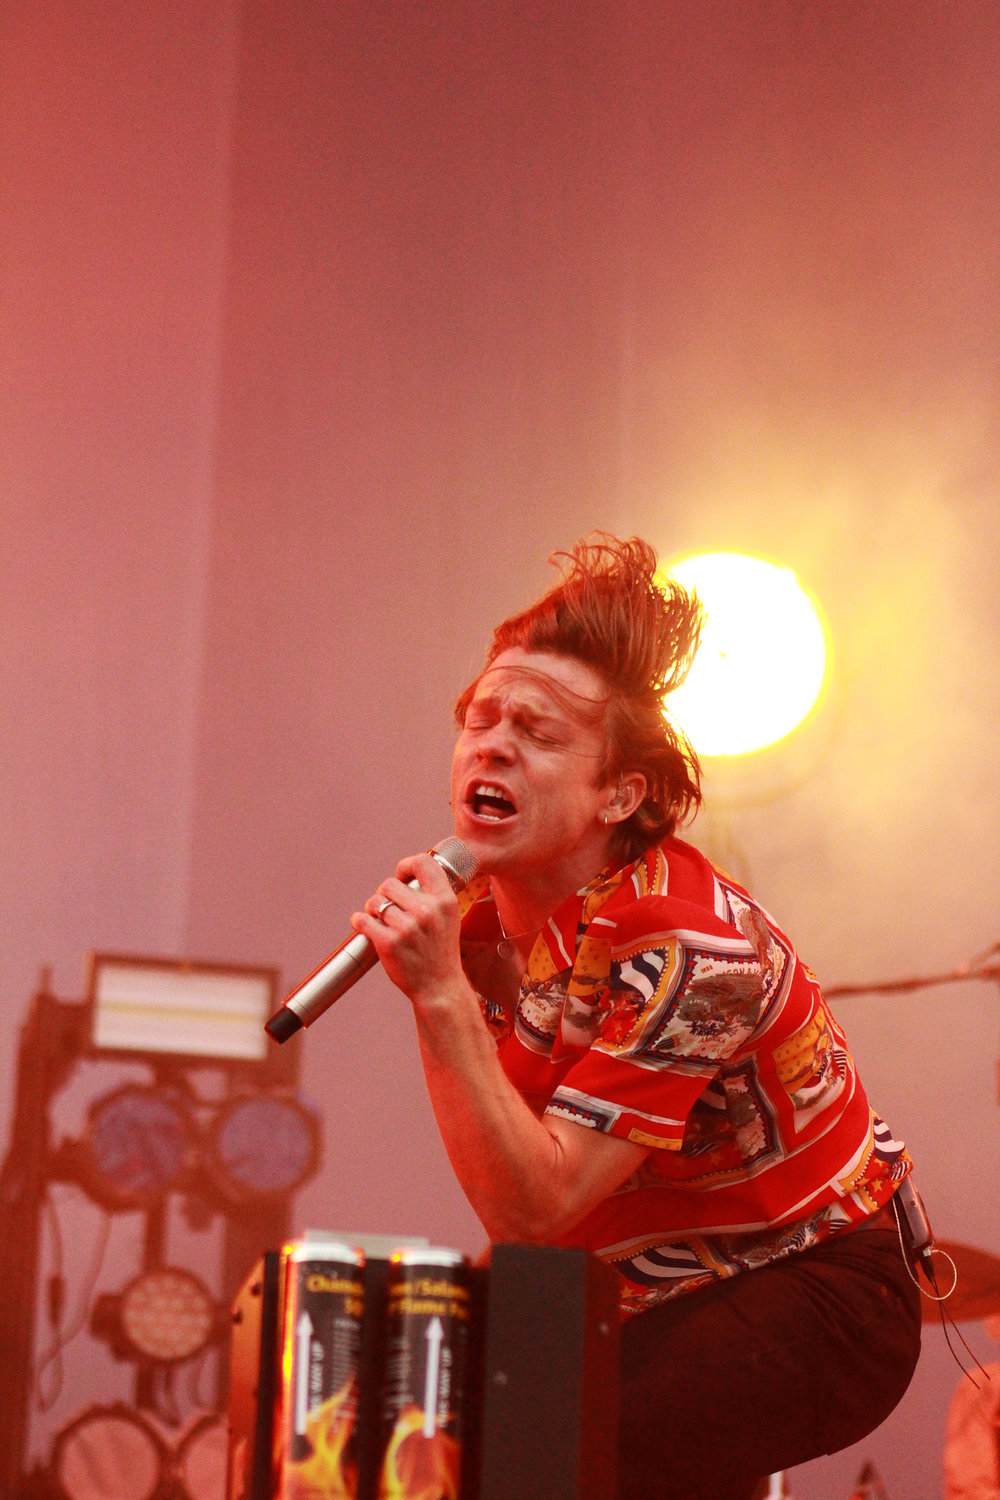 Frontman for the band, Cage the Elephant, belts out the lyrics.